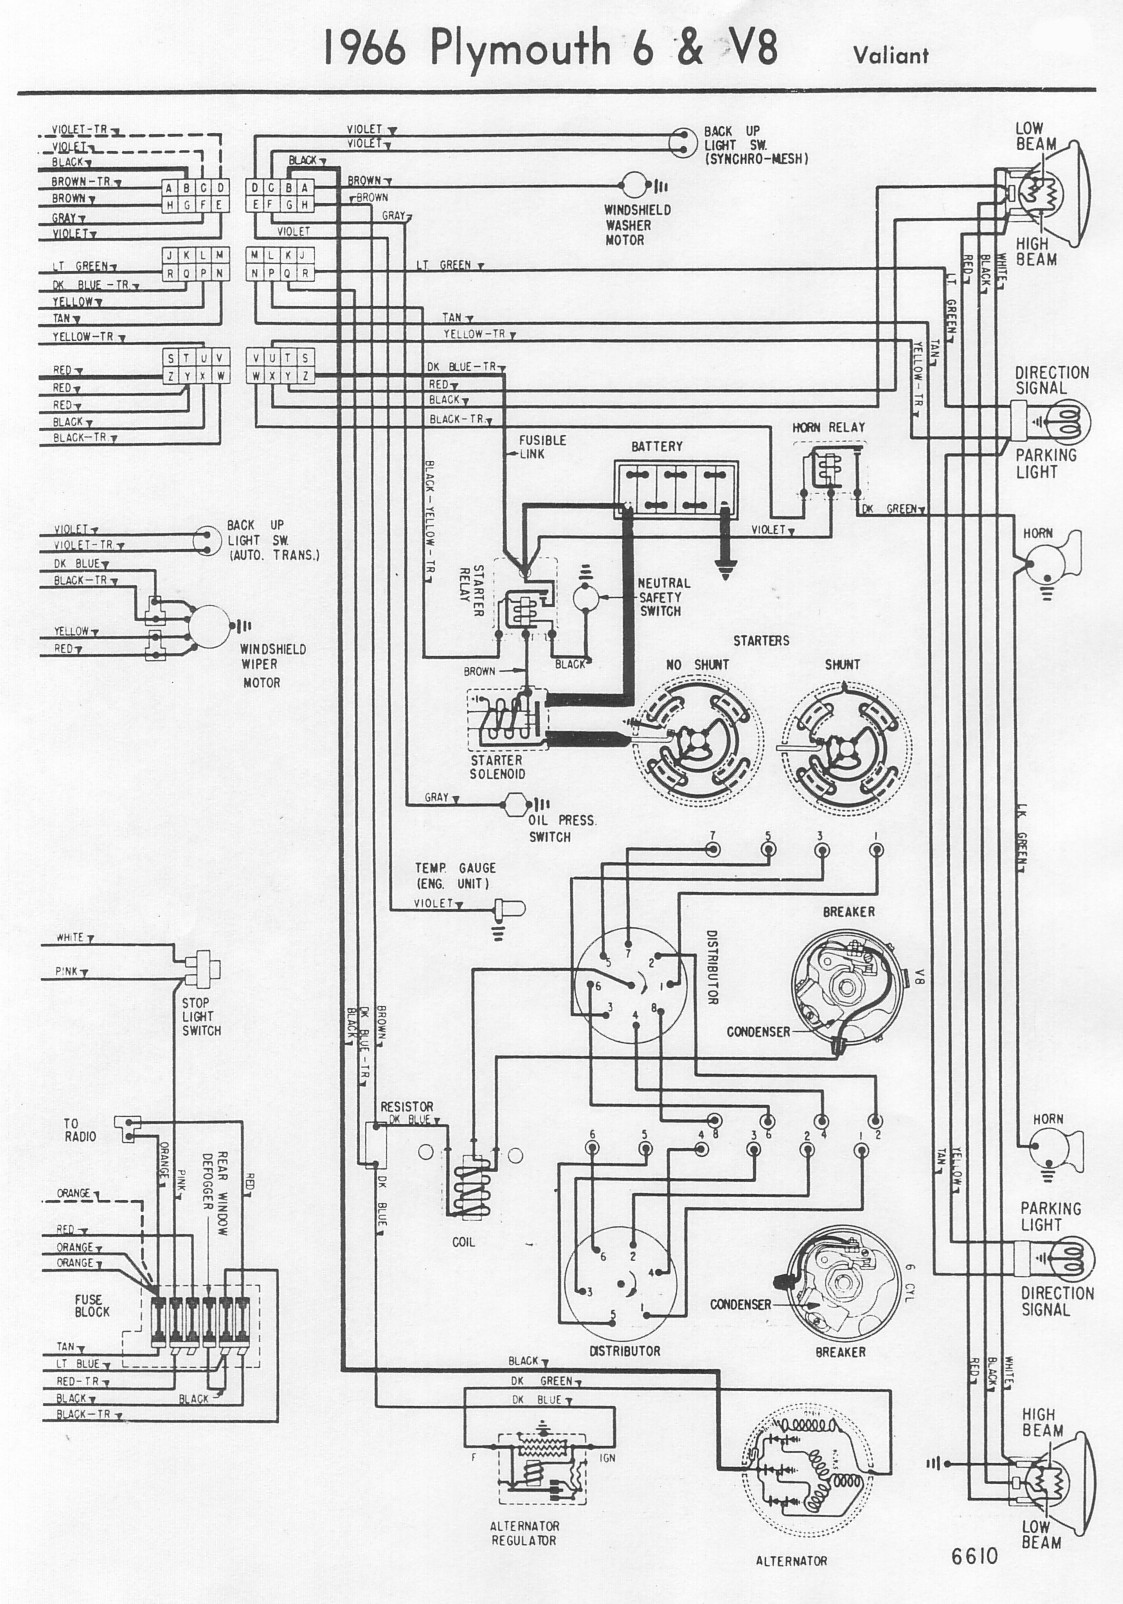 02 rancher 350 wiring diagram